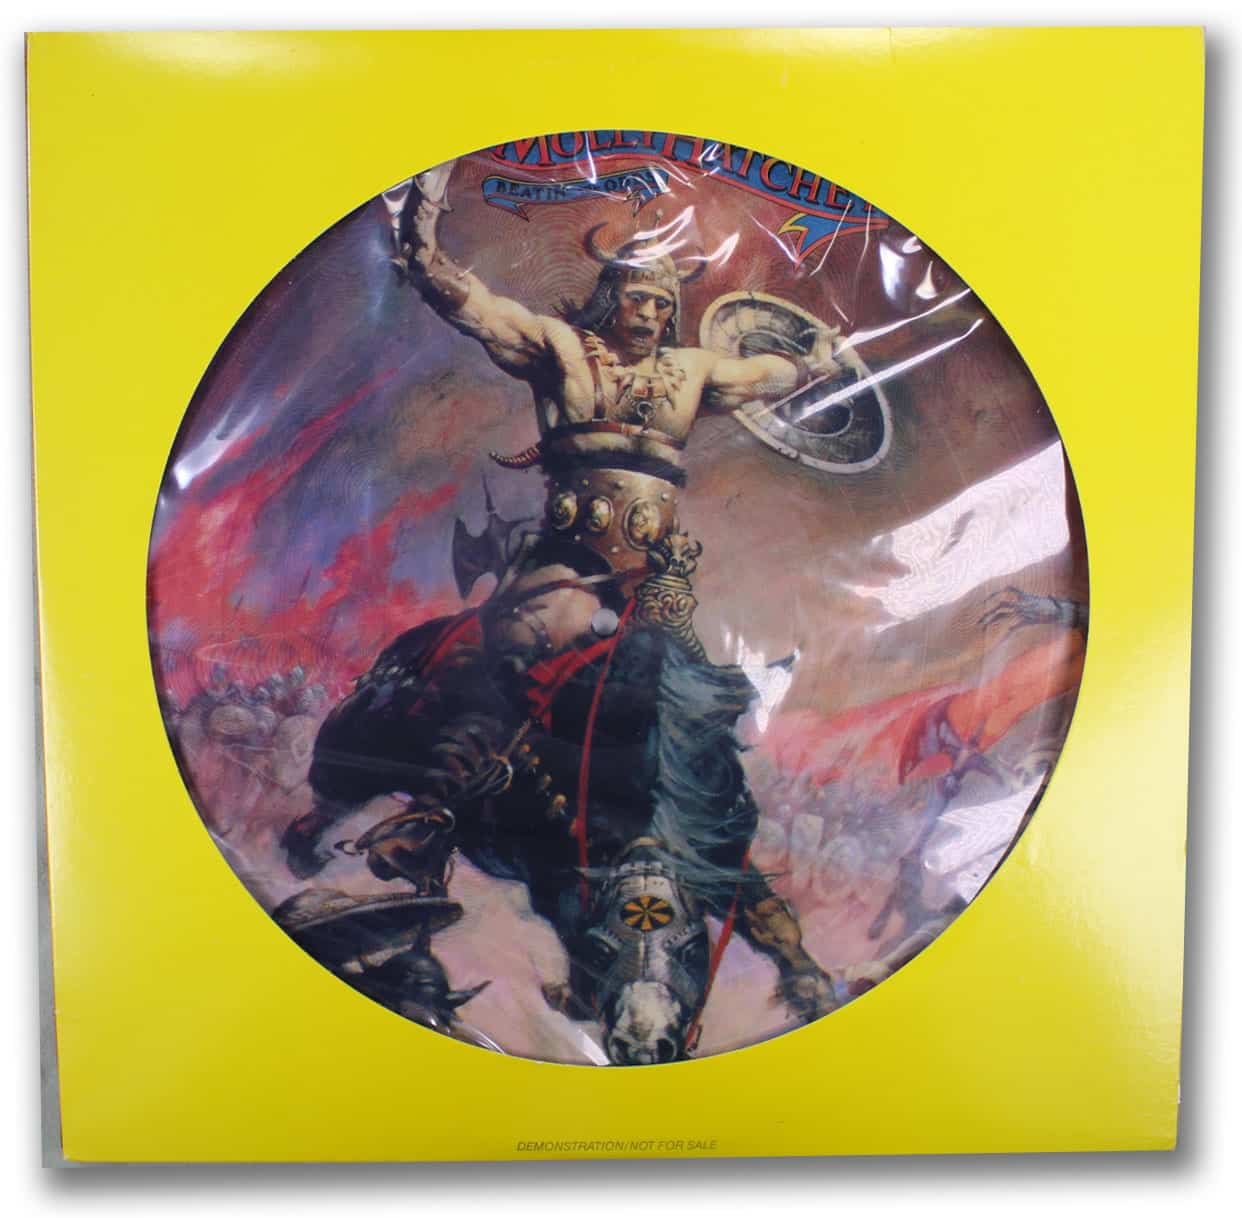 Molly Hatchet, Beatin' the Odds Picture Disc